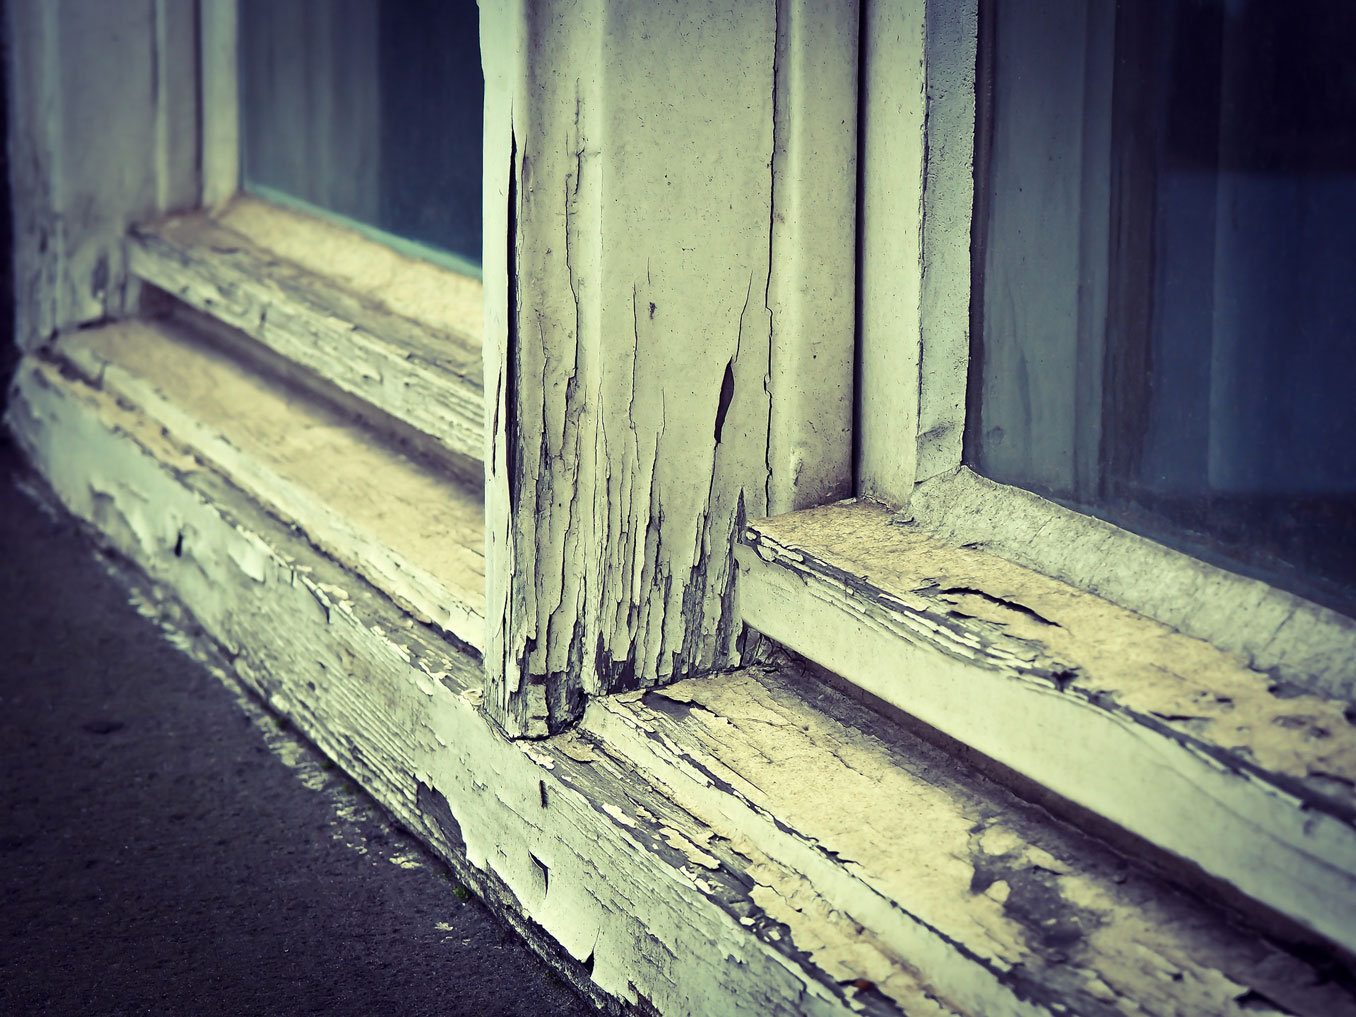 An old window frame with peeling paint